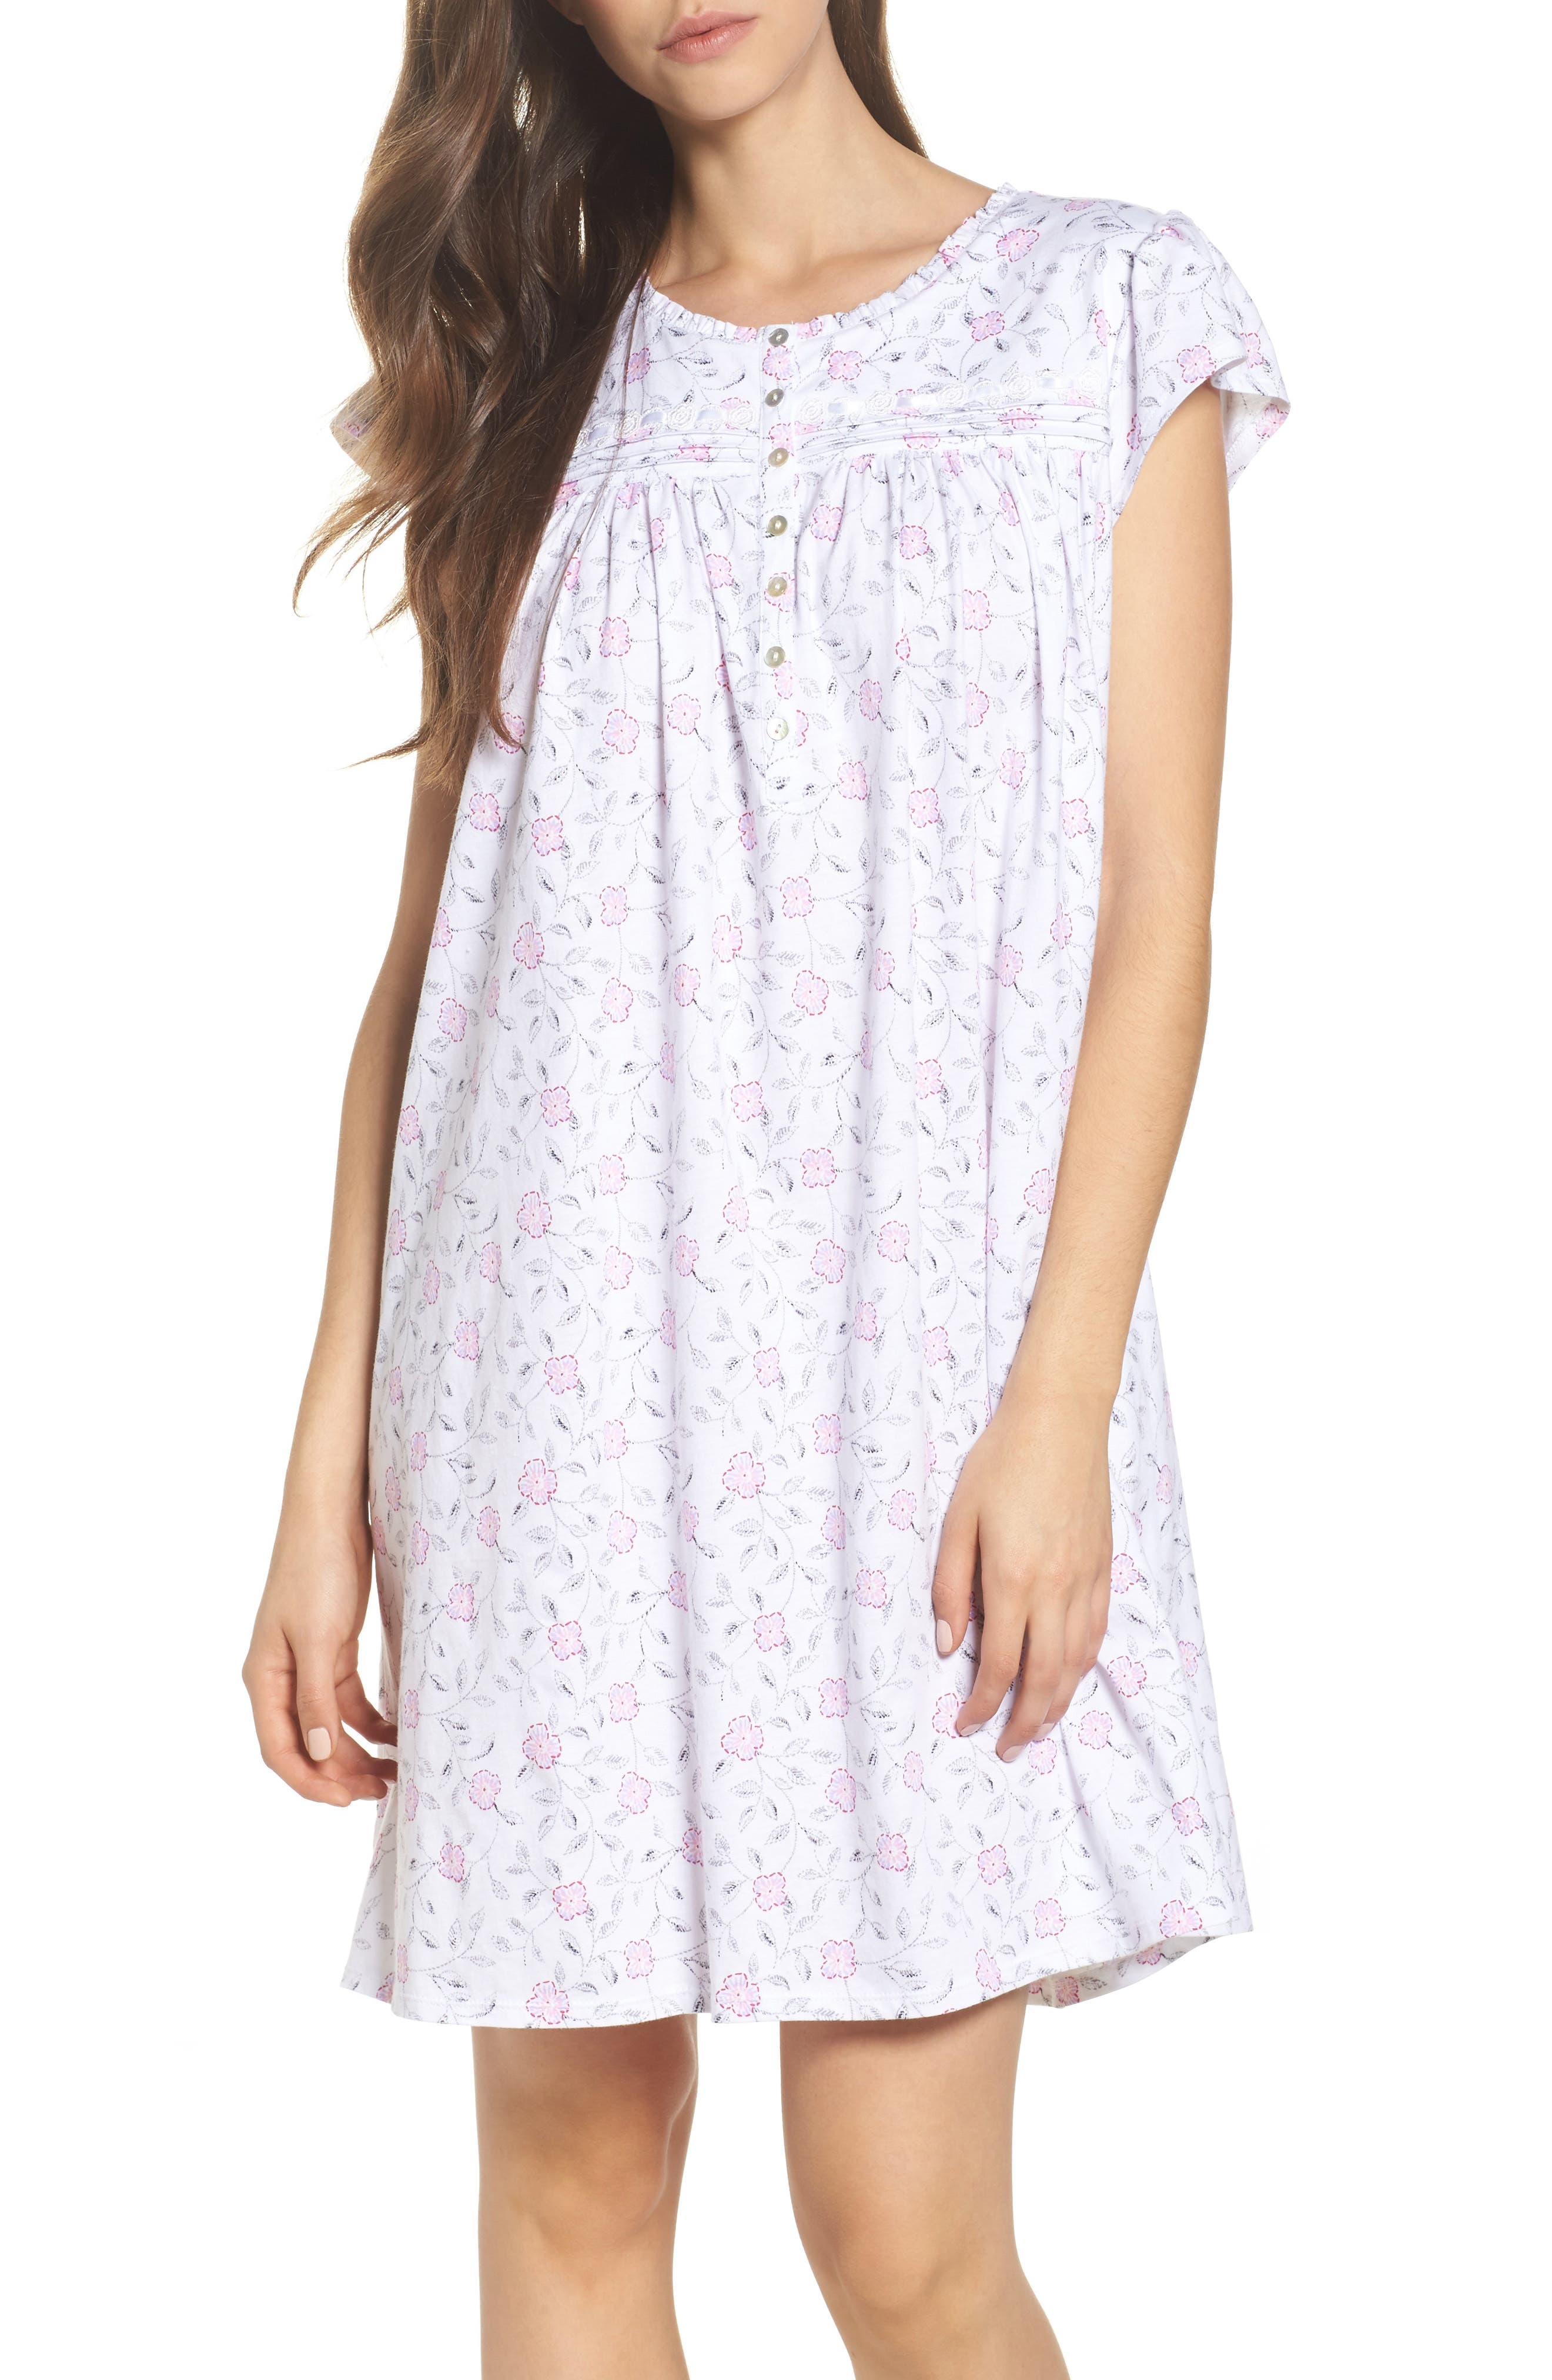 Cotton Jersey Nightgown,                         Main,                         color, White Floral Scroll